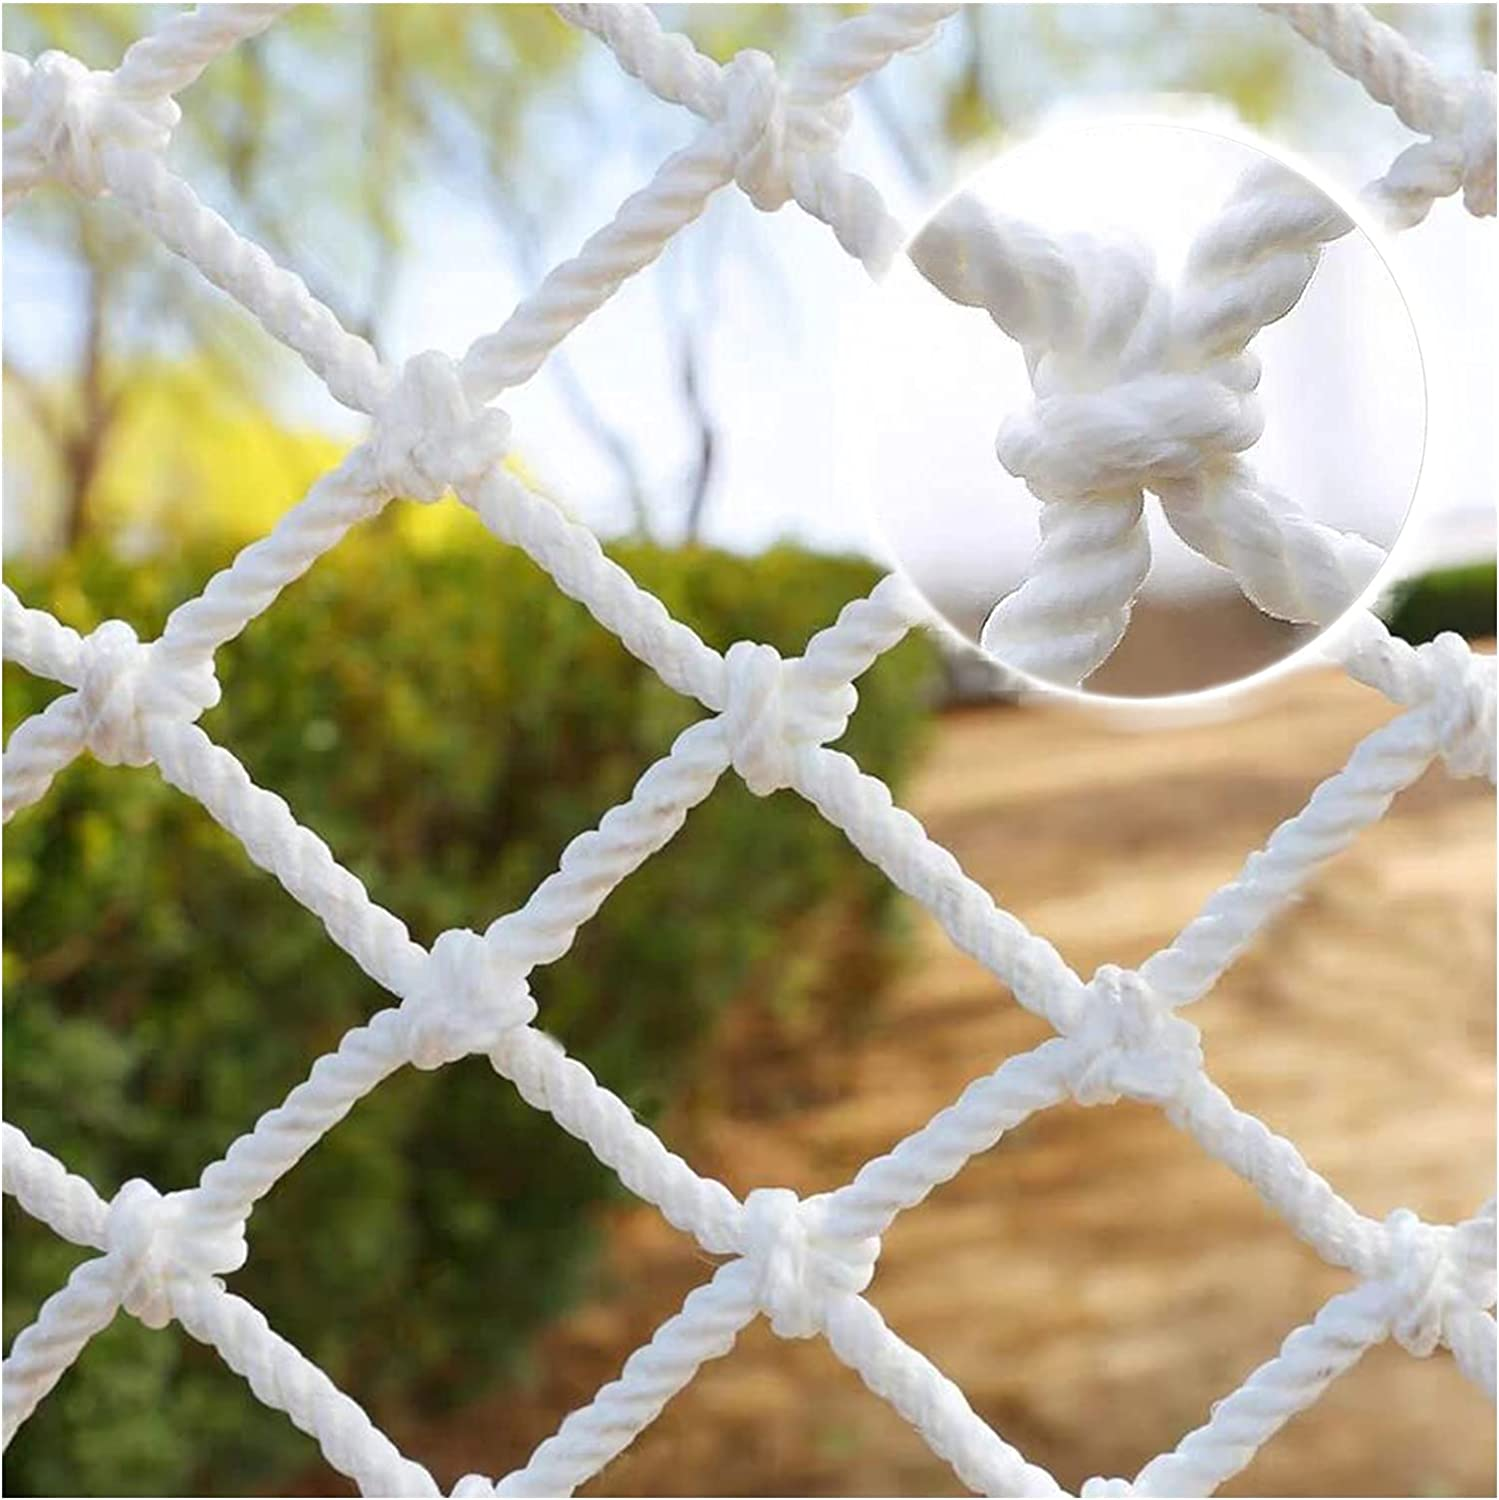 ASPZQ Pet Safety Net Balcony Fence Protection Mes Finally resale start Decor Banister Weekly update